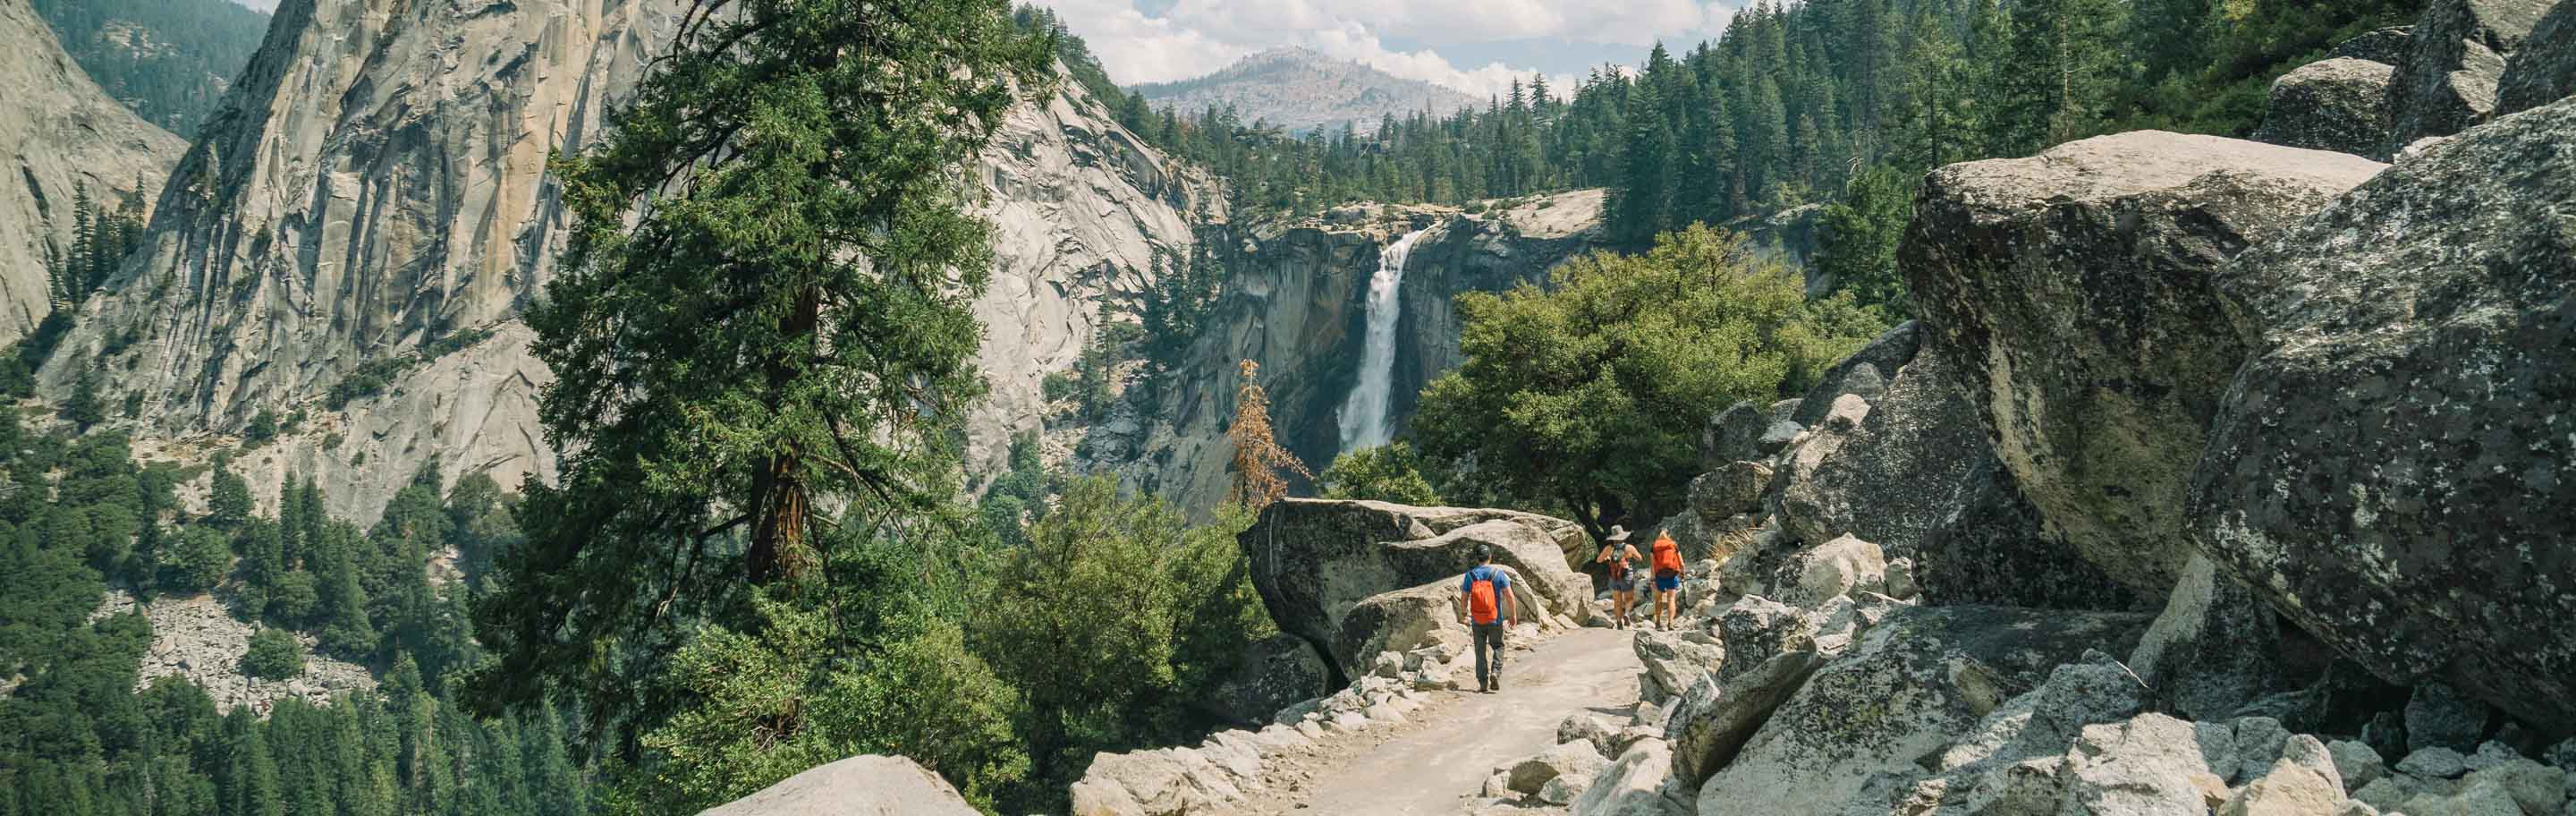 Hiking group climbs rocky trail toward Yosemite waterfall